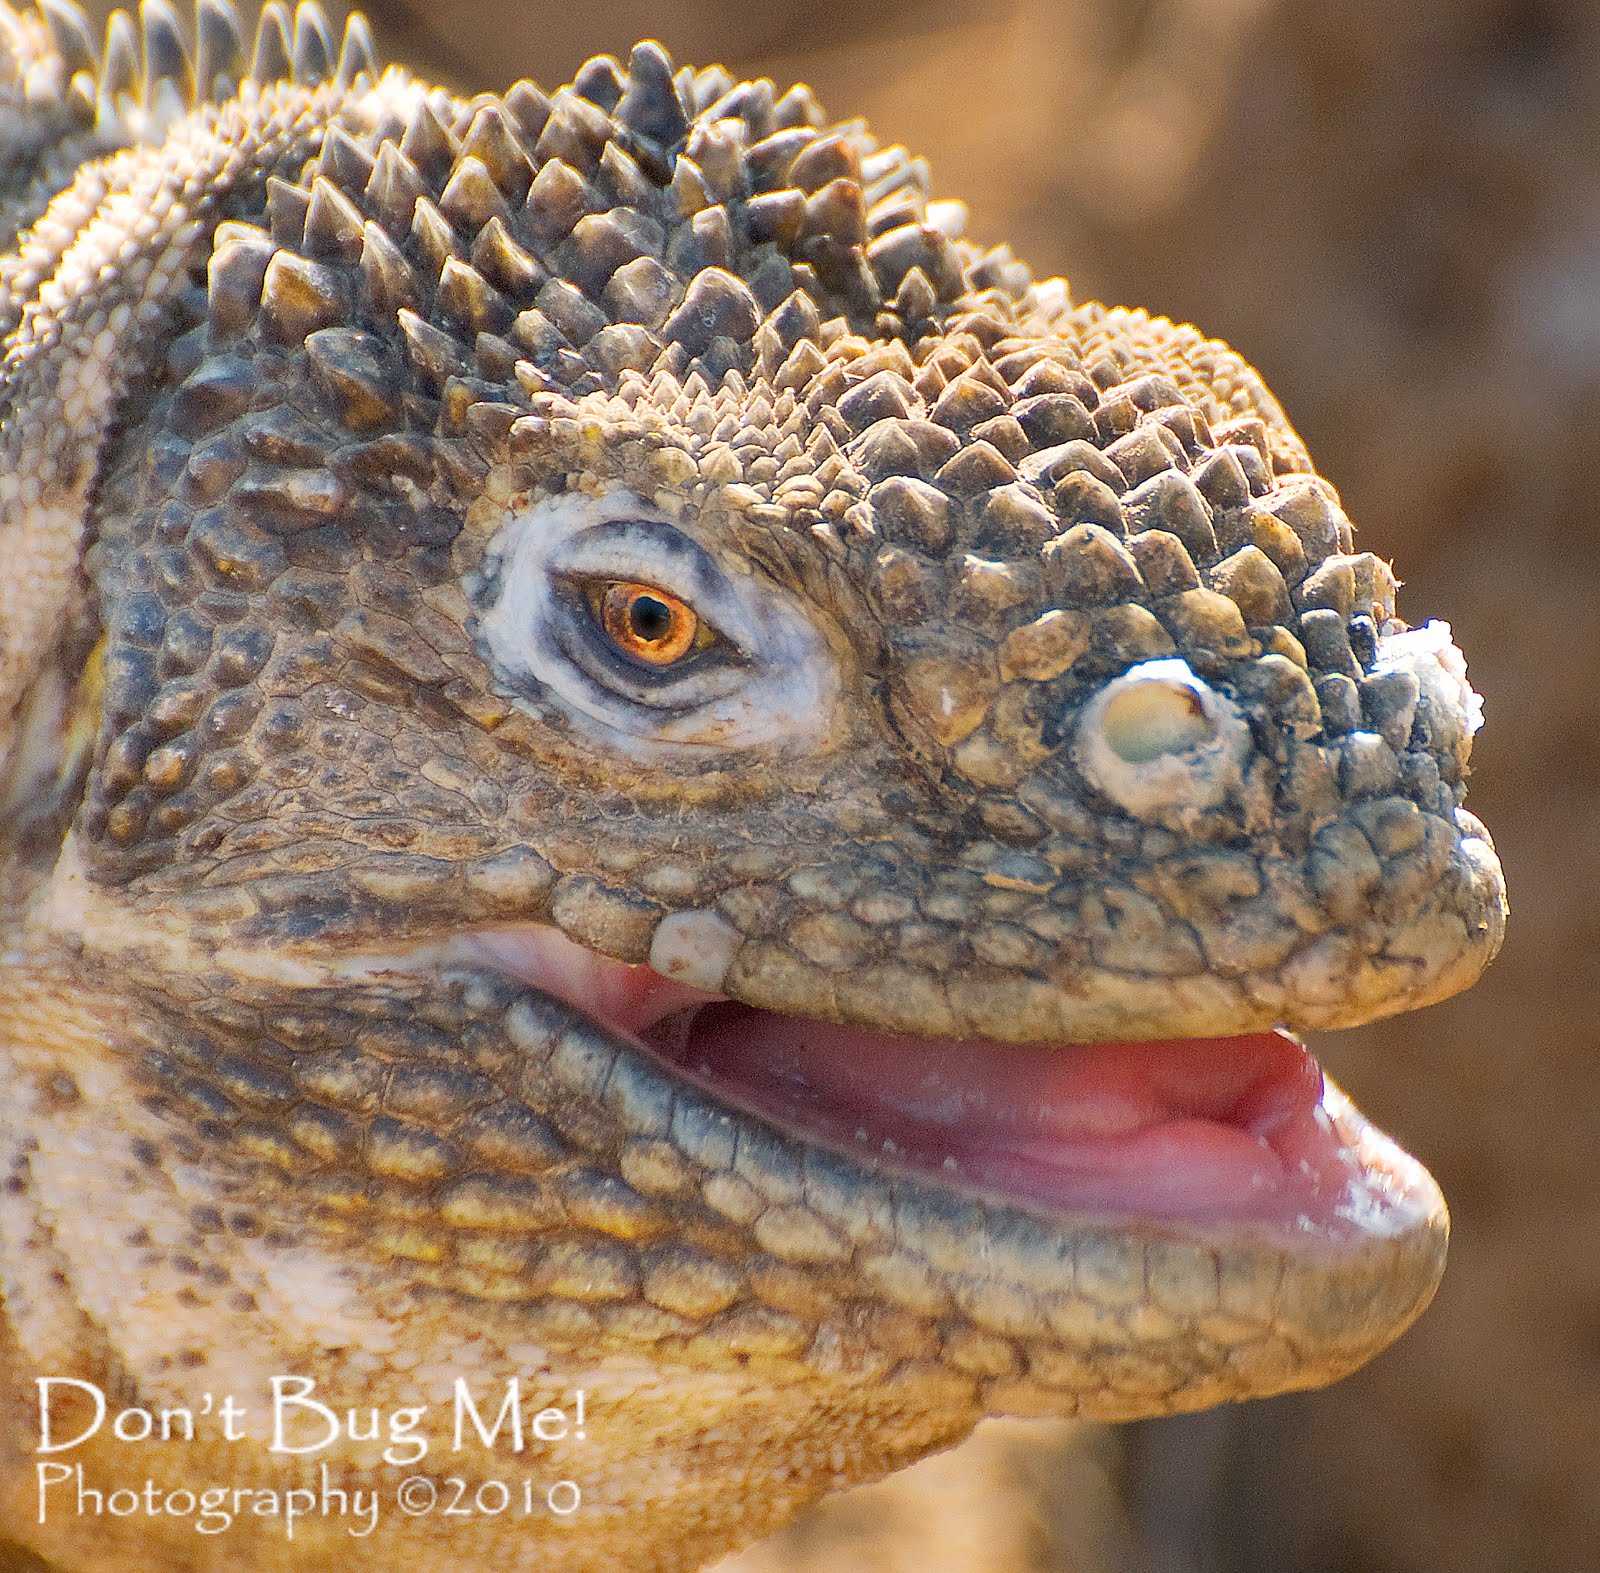 Pictures of Big Lizards on Animal Picture Society